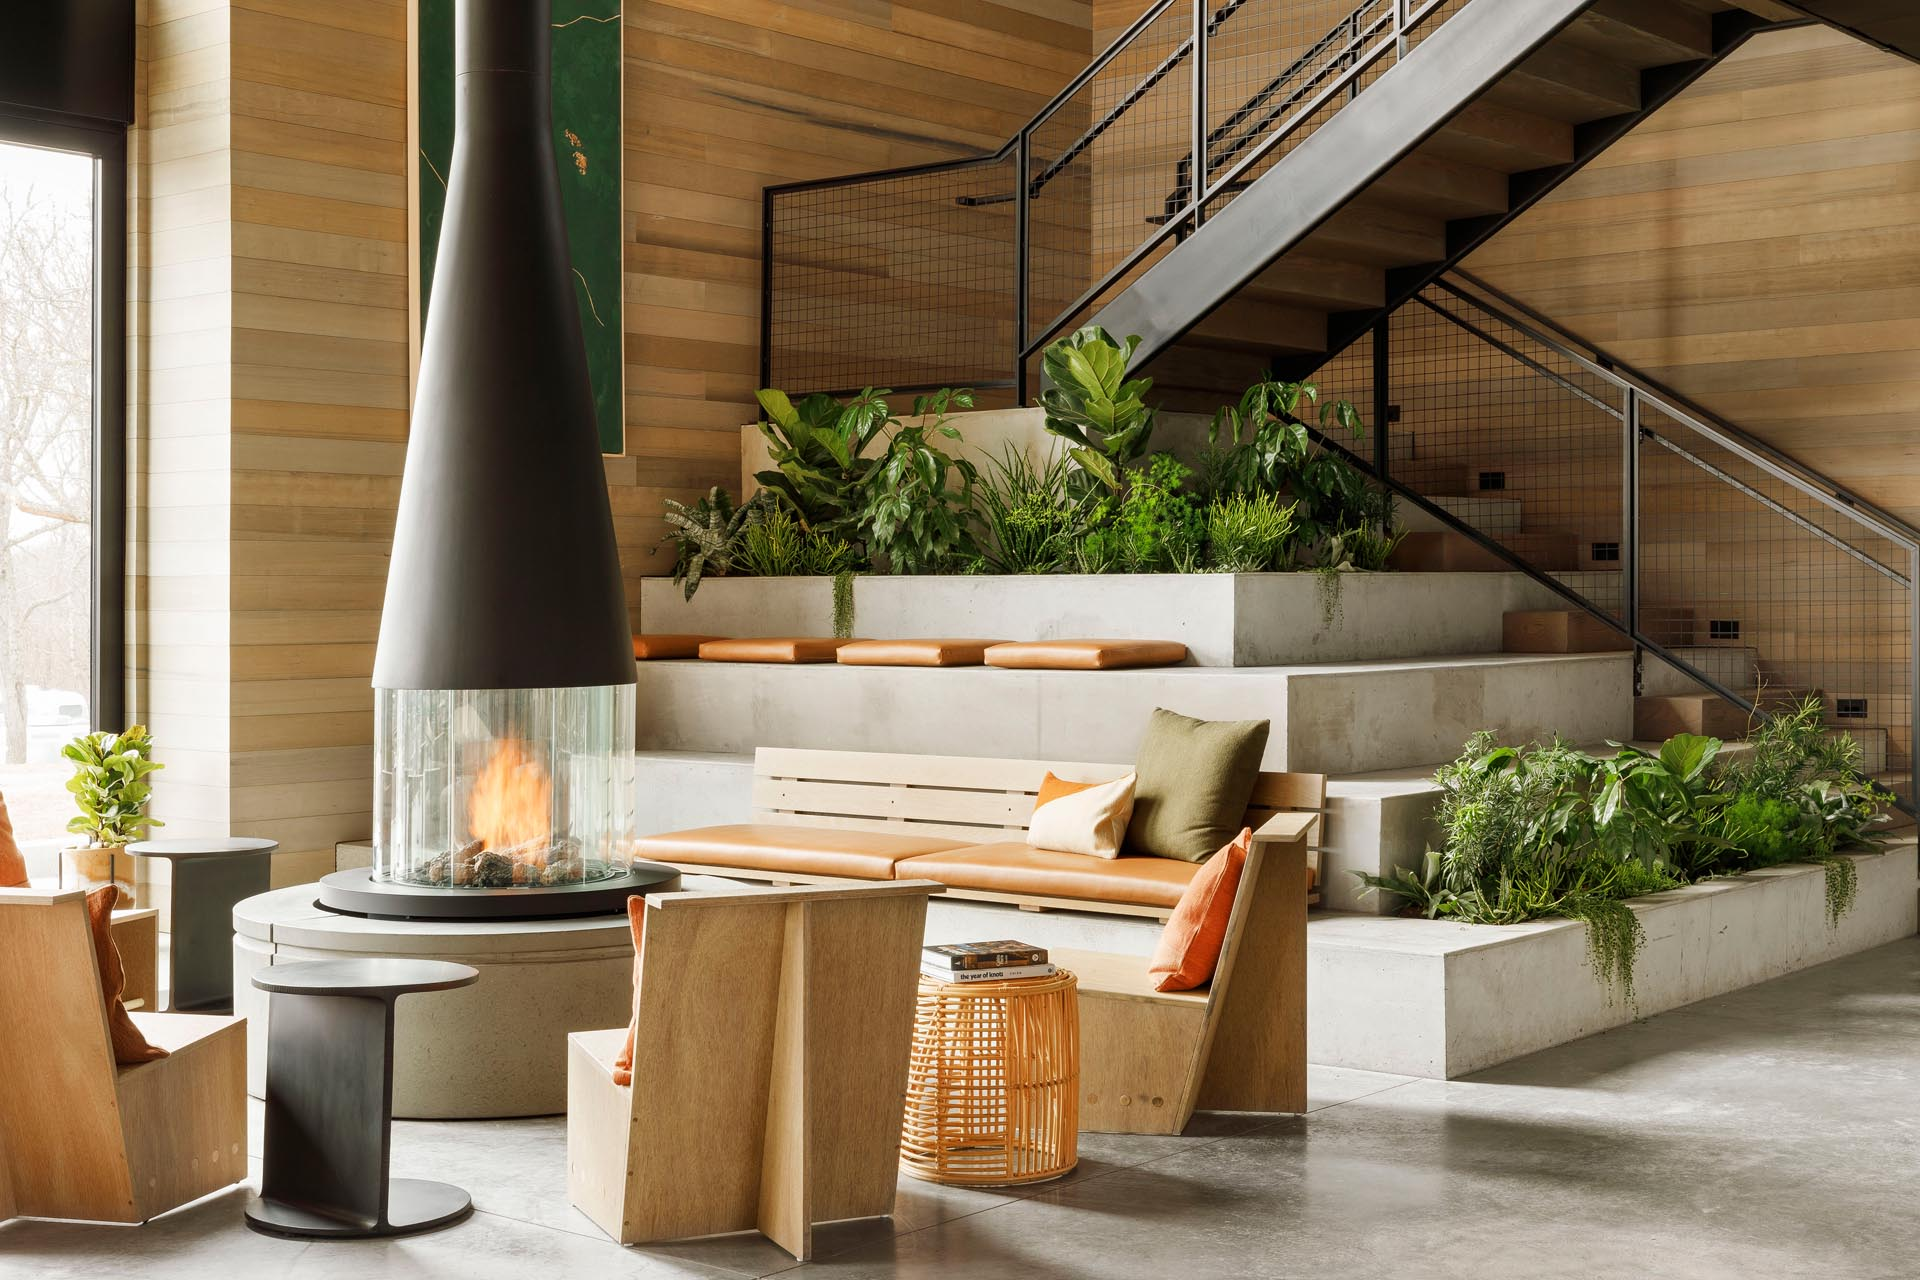 Tiered seating, created as an extension of the stairs, includes built-in planters.